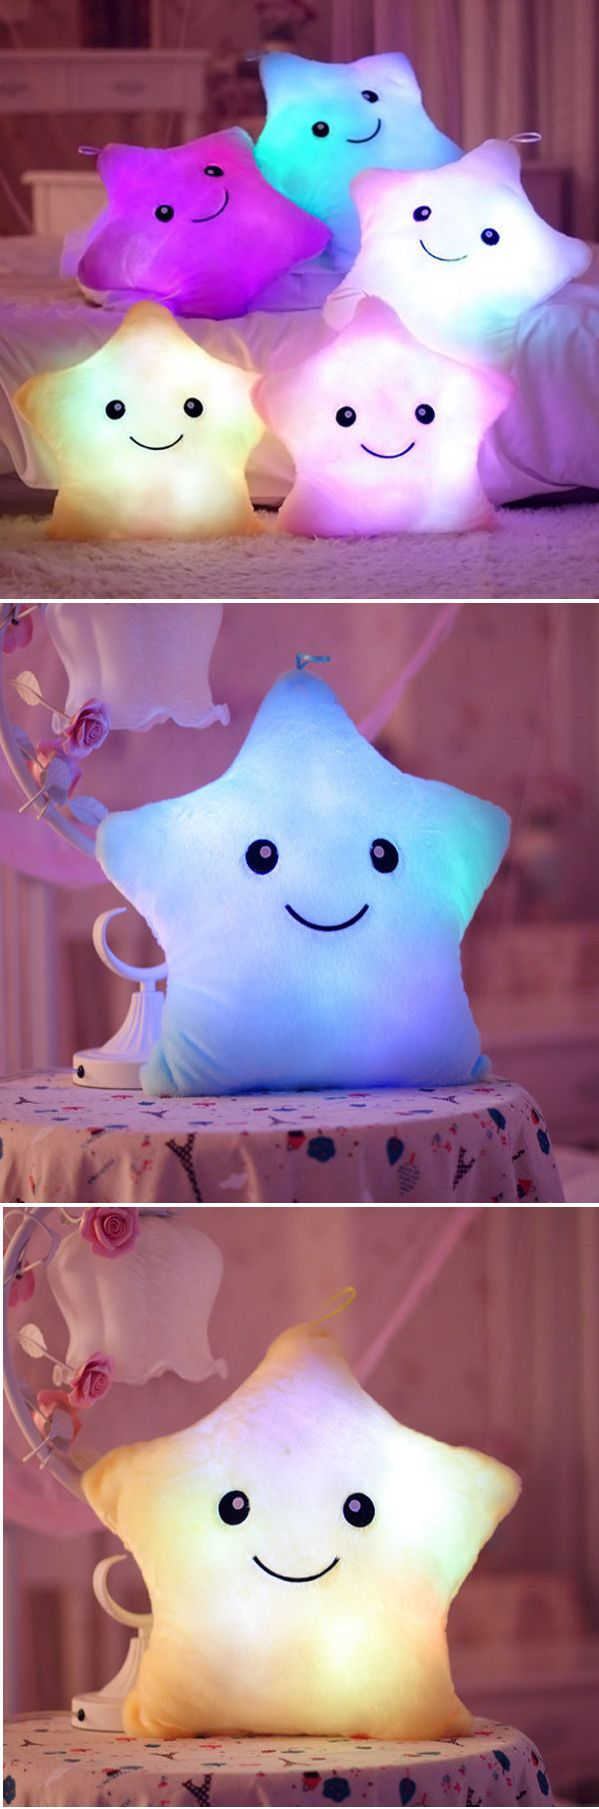 US$8.99 Plush Colorful LED Light Star Shape Throw Pillow Home Sofa Party Decor Toys Gift